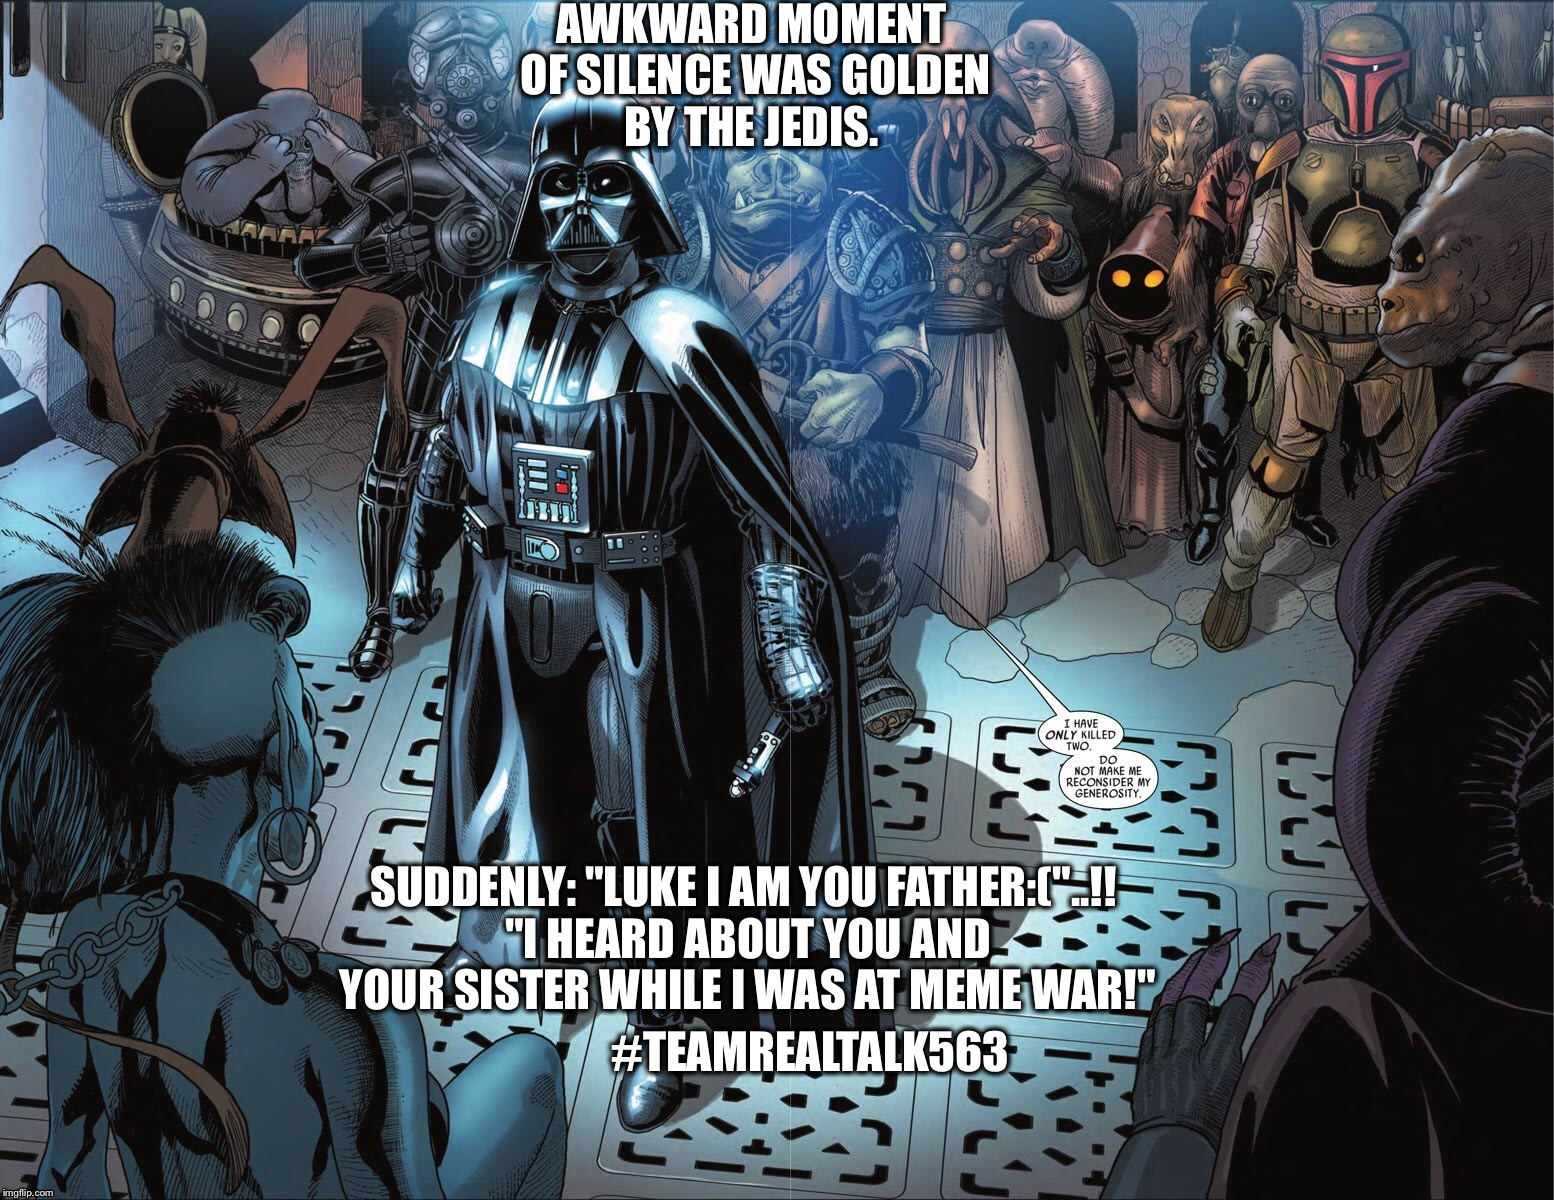 "Have ""The force Awakened!?"" Cause I see views but no galactic meme action? #bestcommentwins  